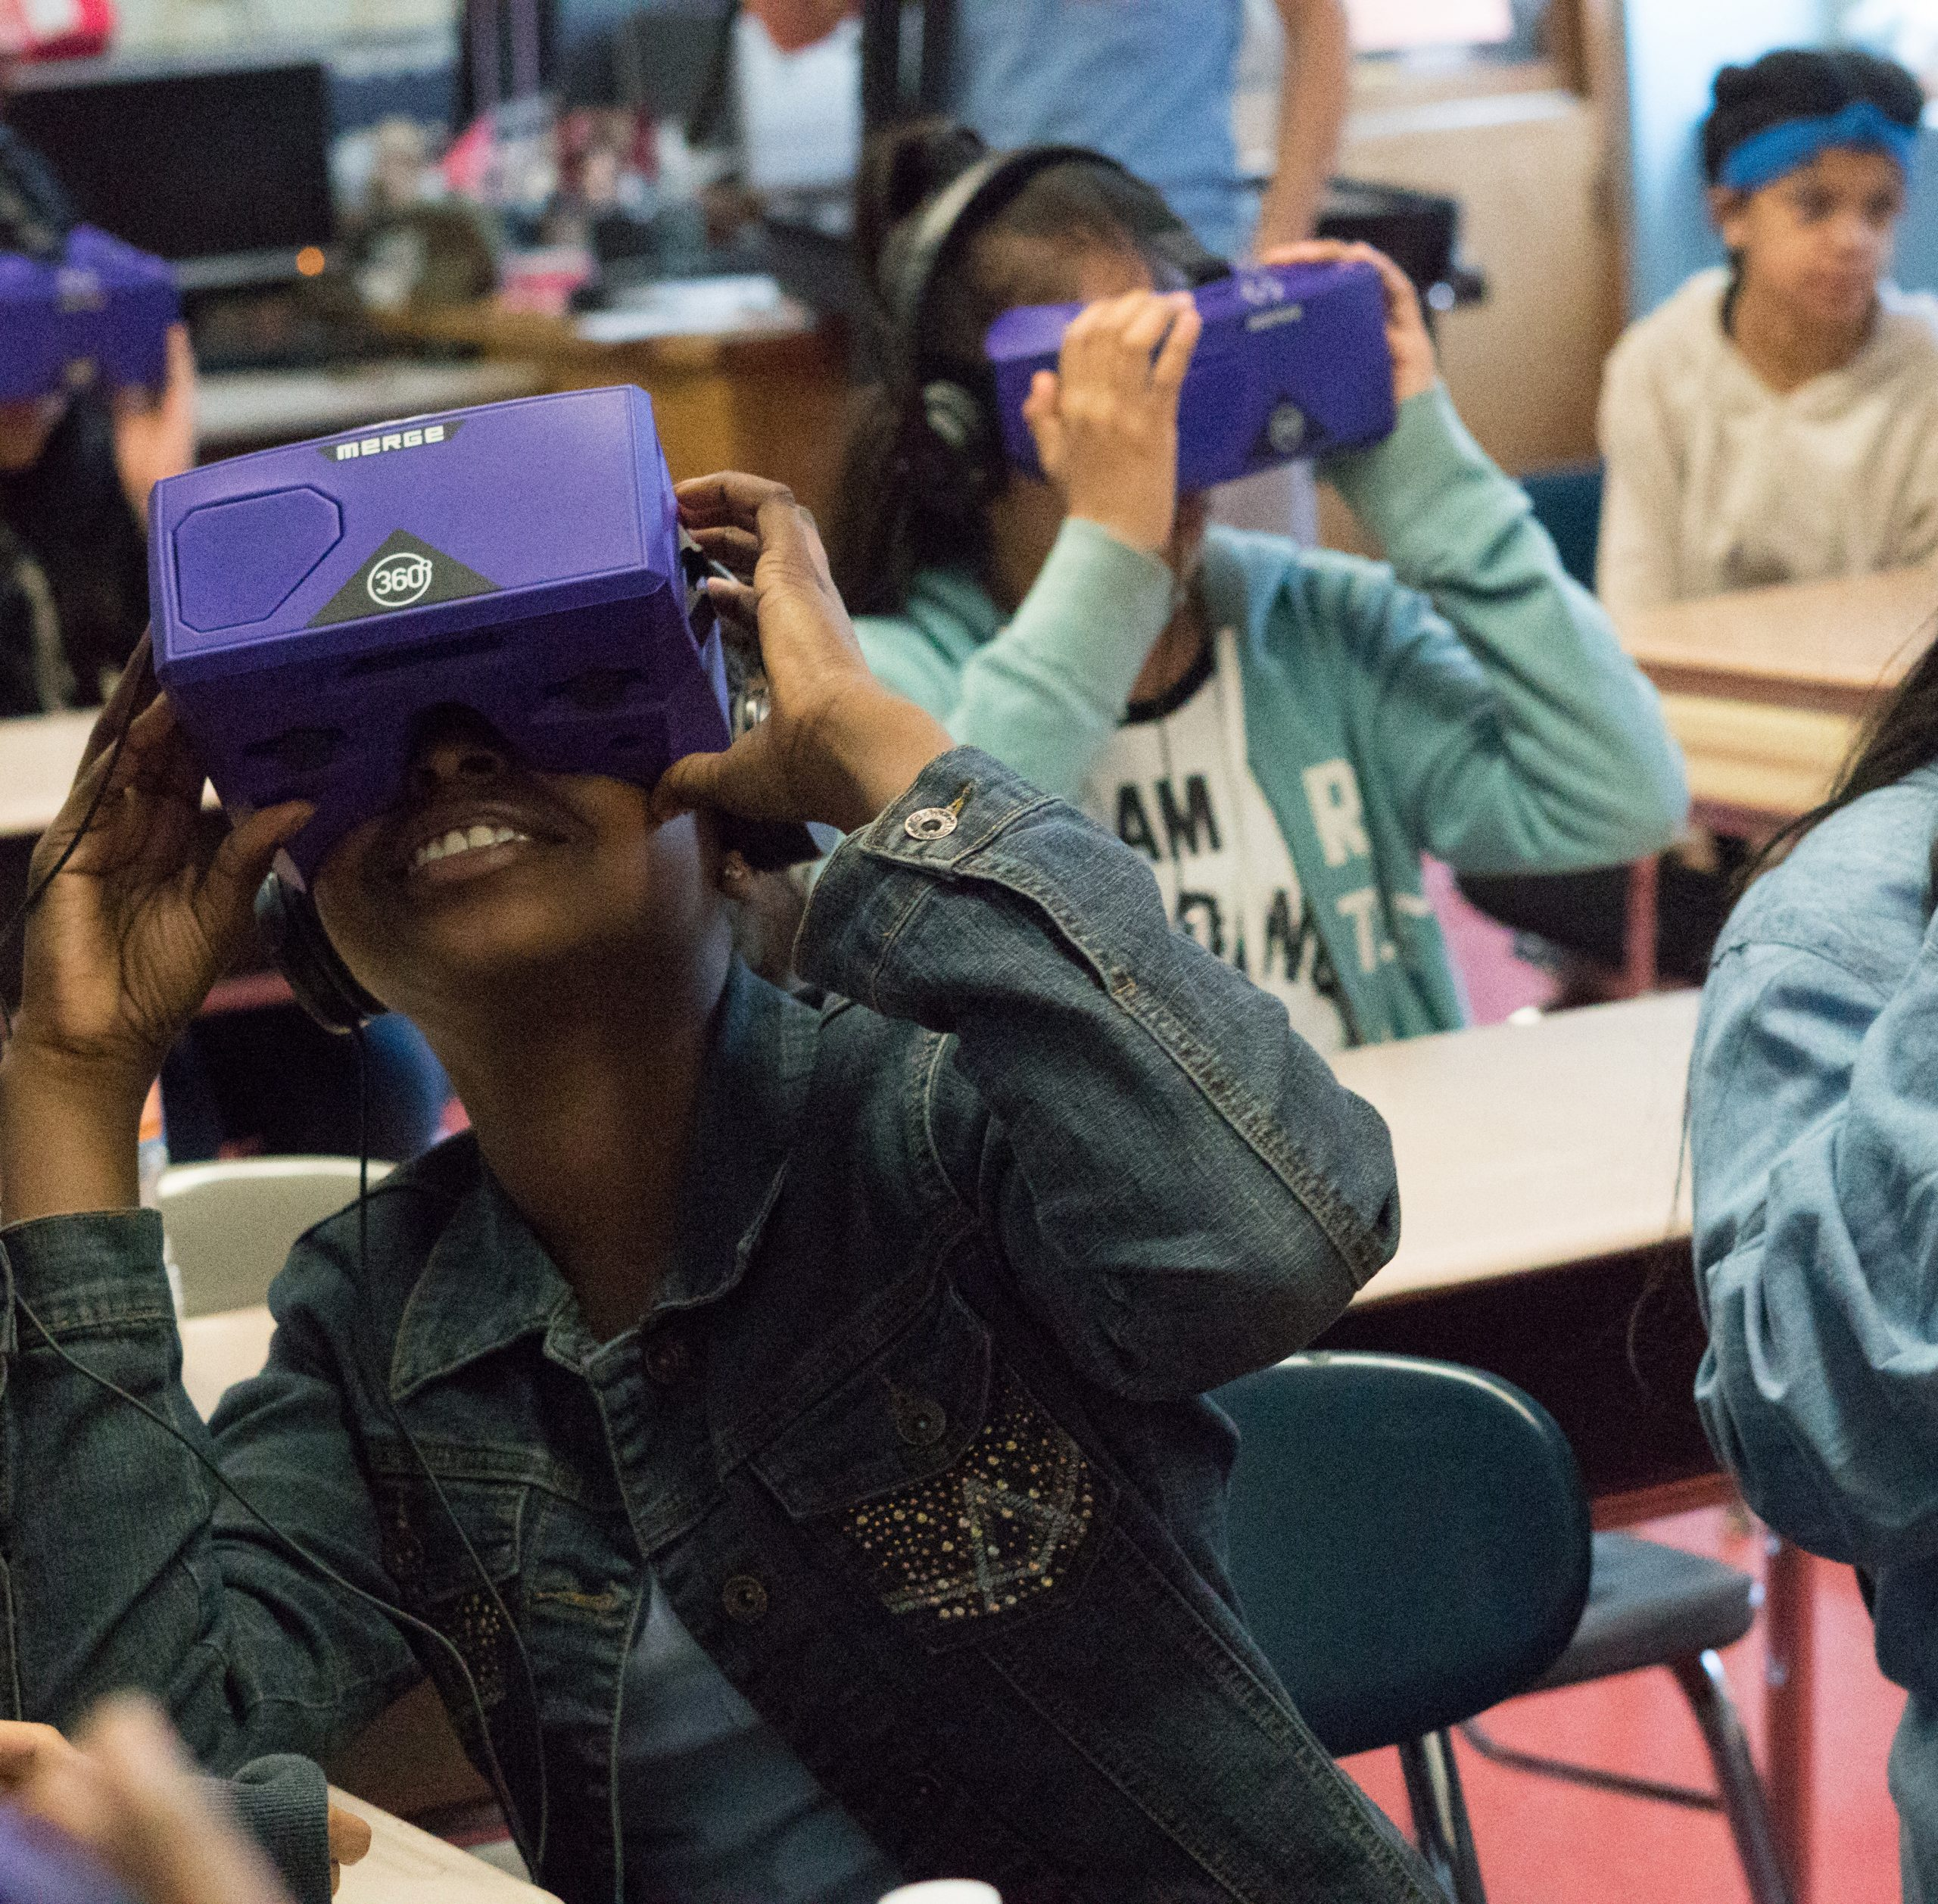 Students in VR headsets.